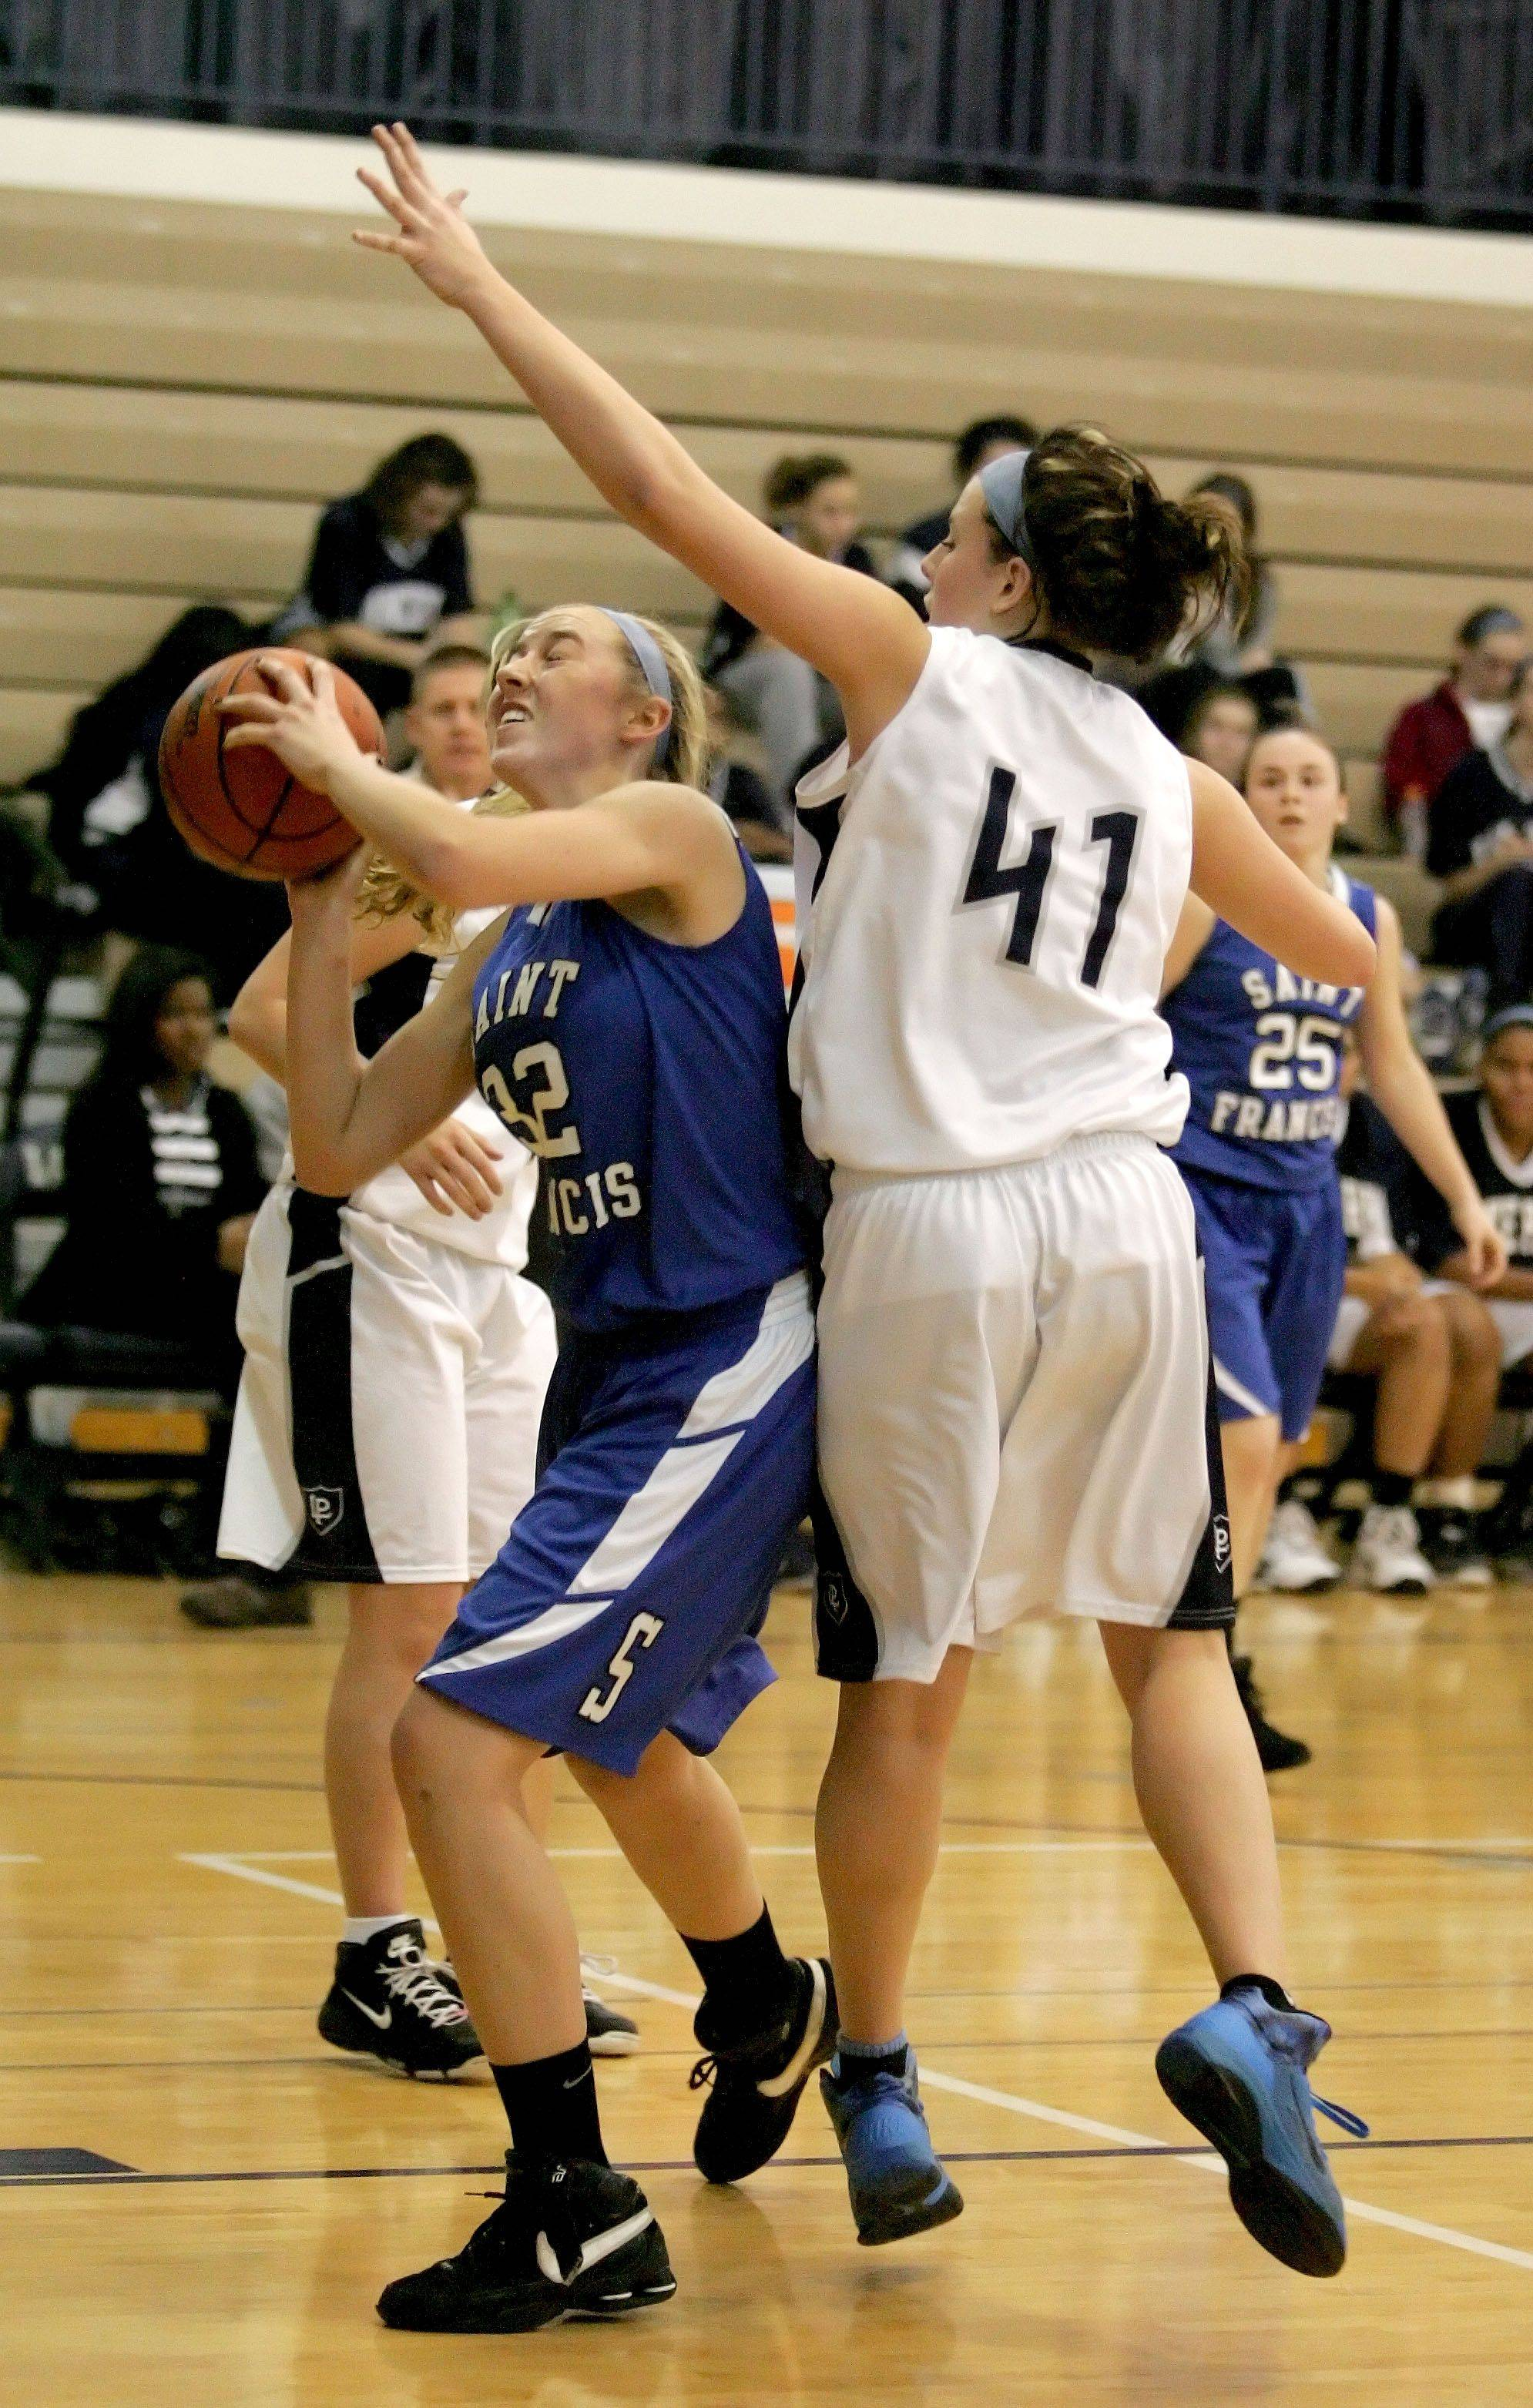 Fiona McMahon of St. Francis, left, takes a shot as Alexis Hahn of Lake Park plays defense.